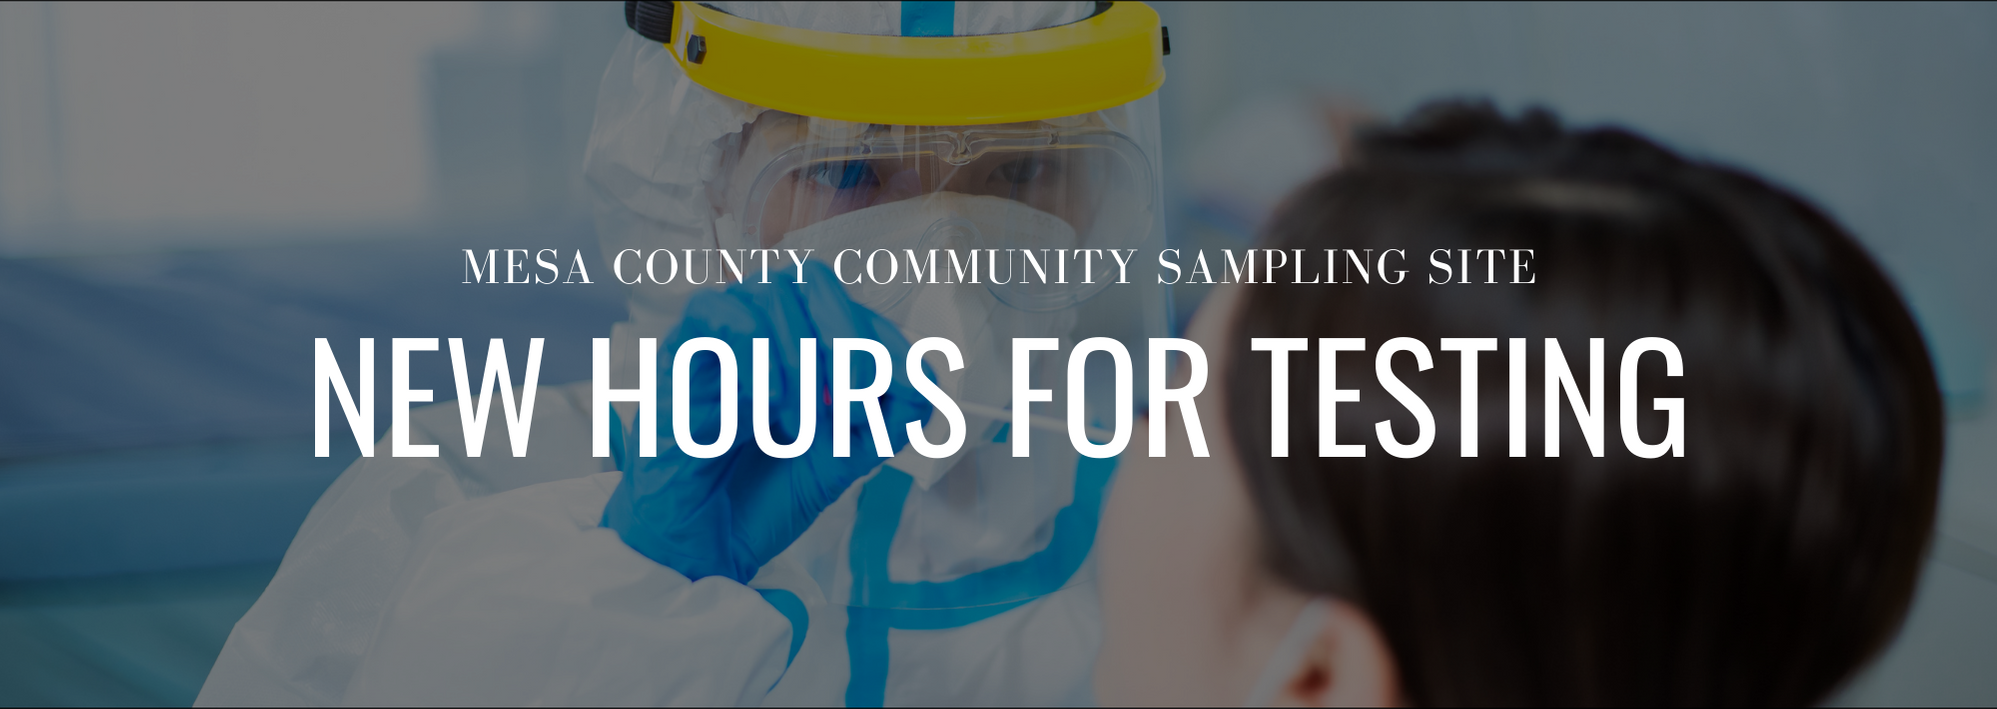 FREE COVID-19 Community Testing Site Announces Winter Hours